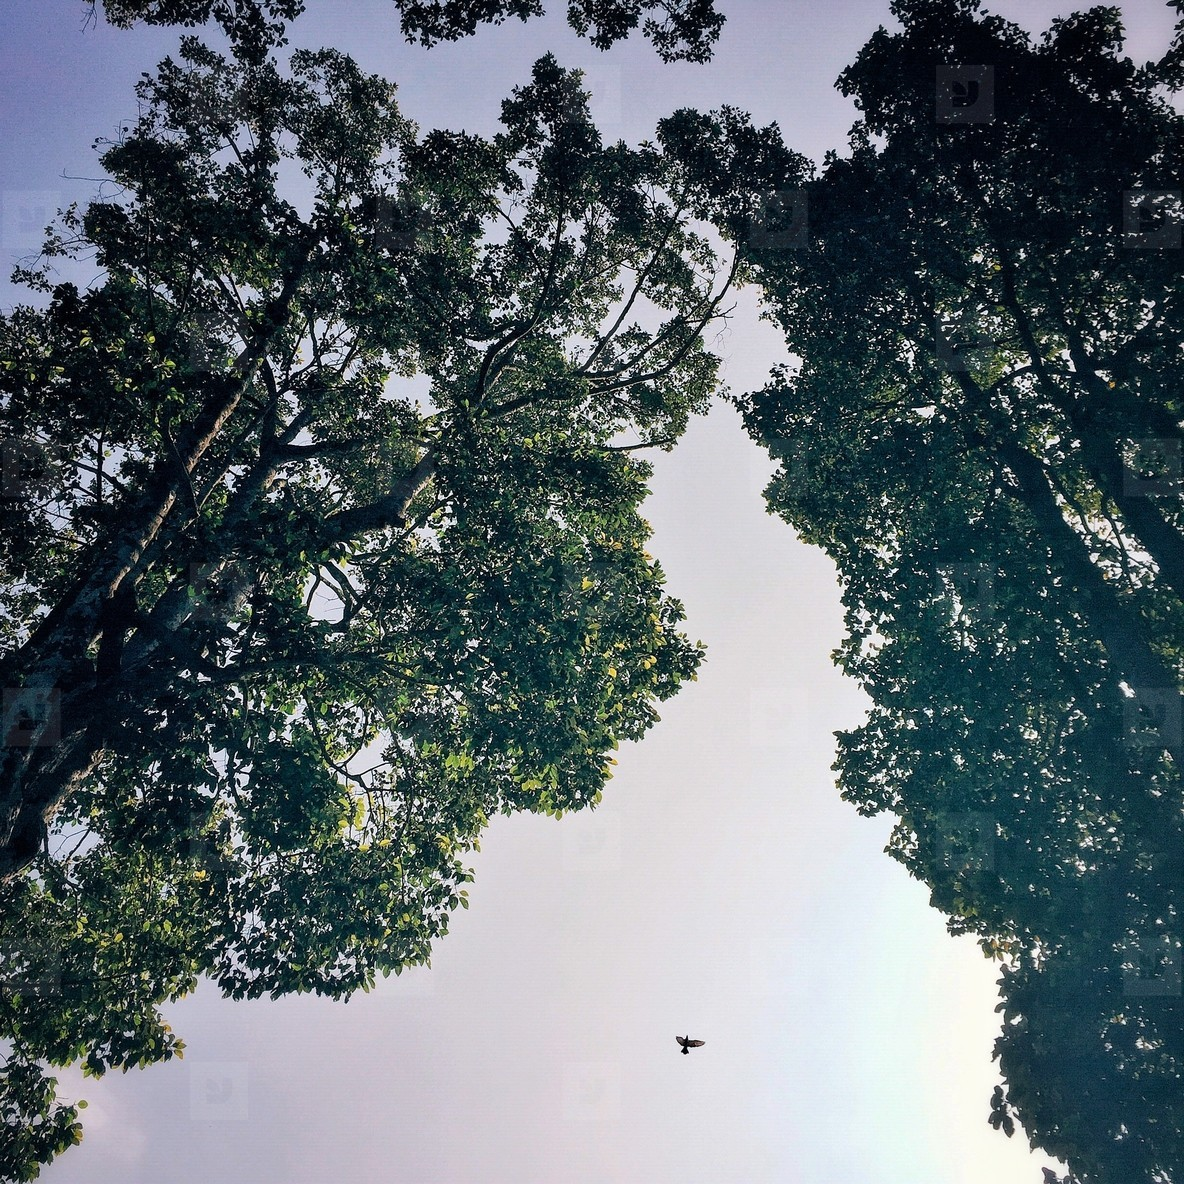 Against trees with flying bird